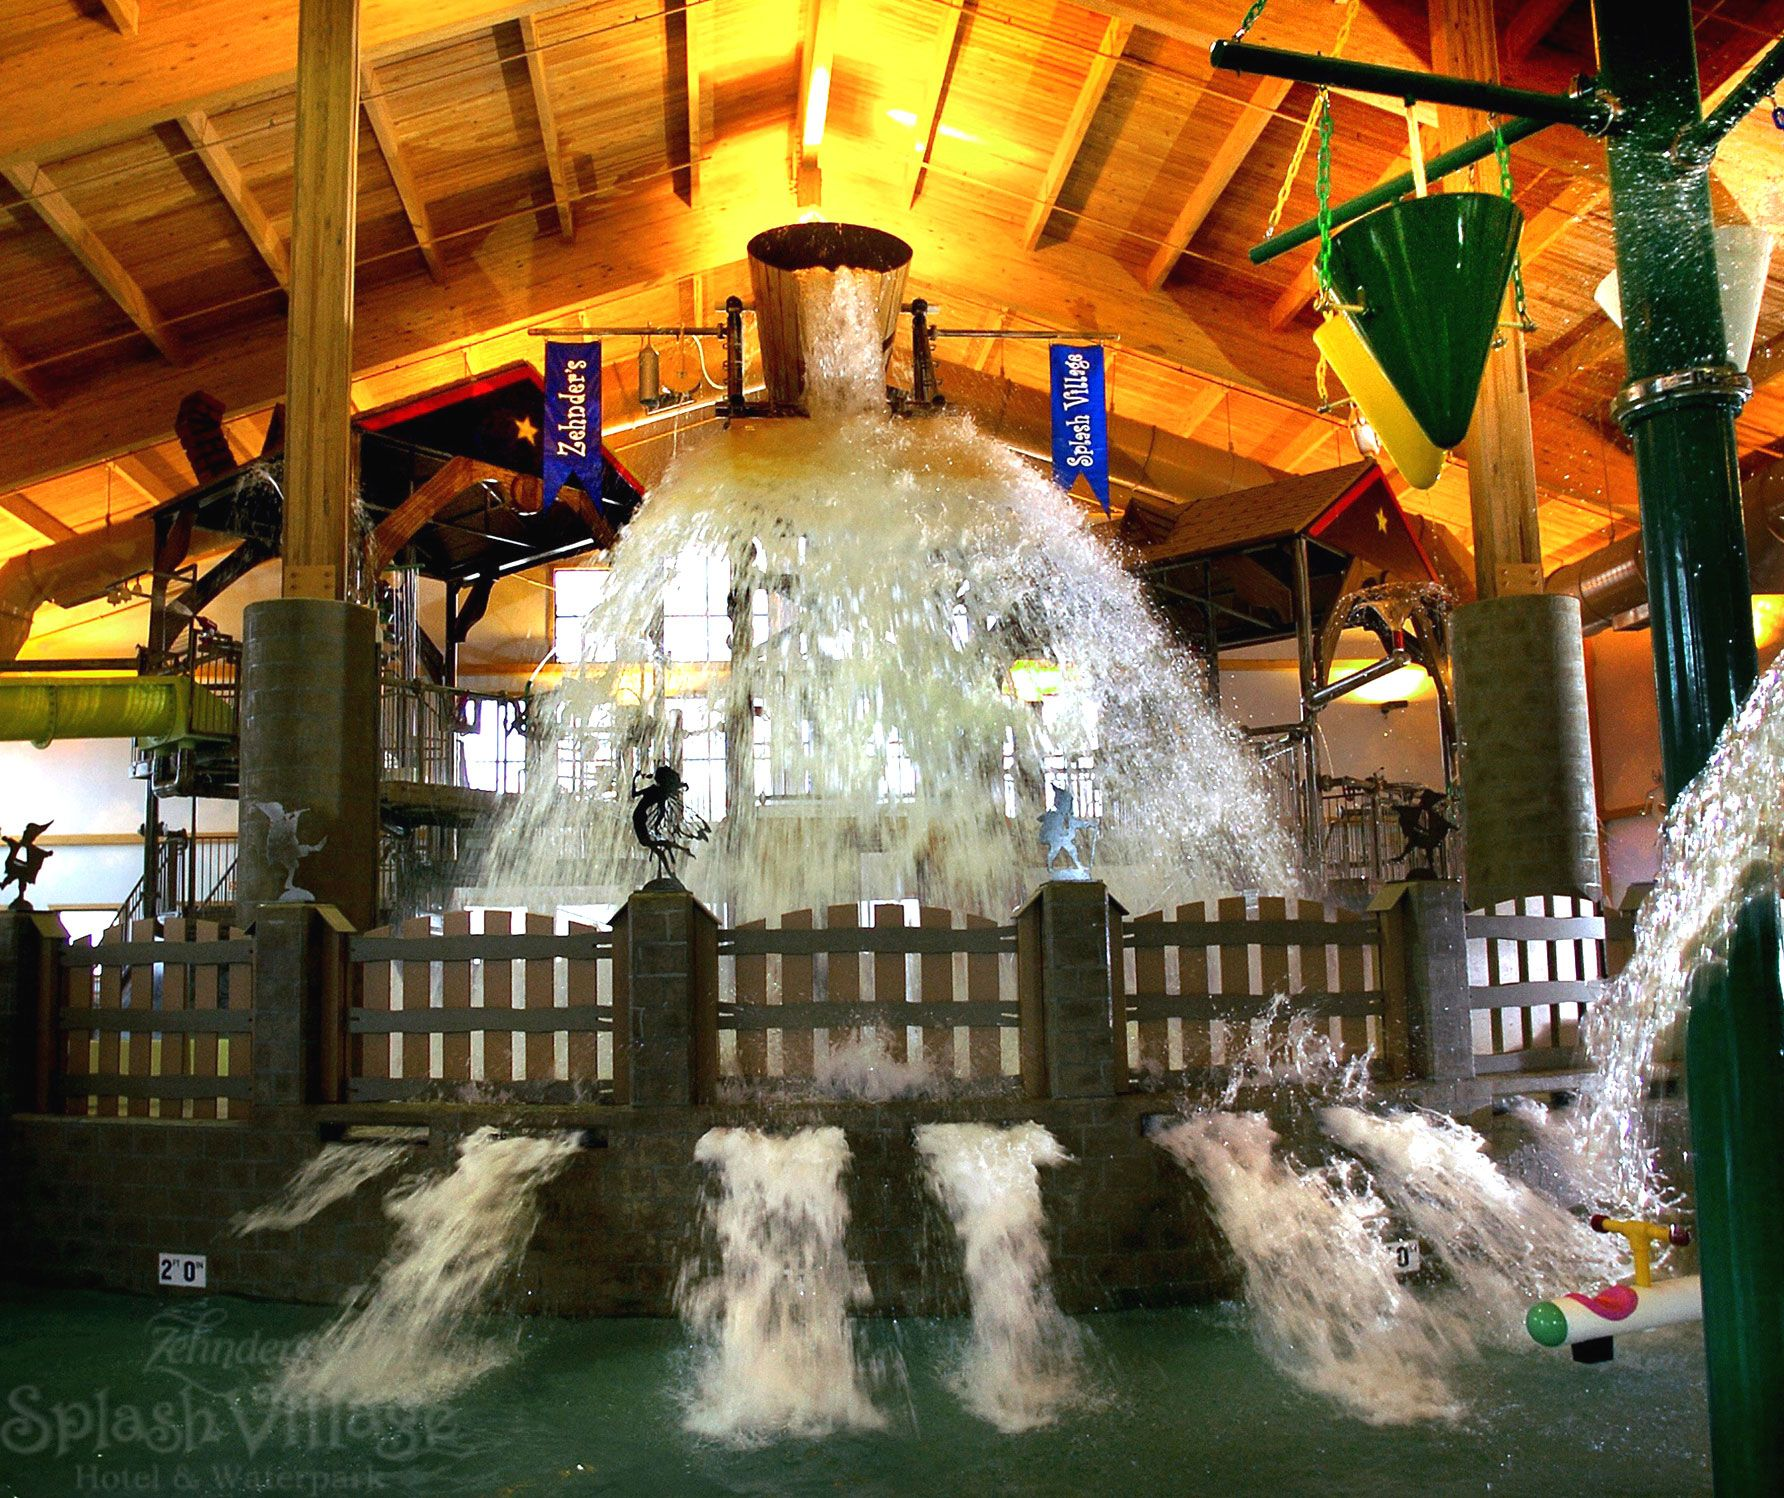 Michigan S Zehnder Splash Village Hotel And Indoor Waterpark Located In Frankenmuth Water Activities All